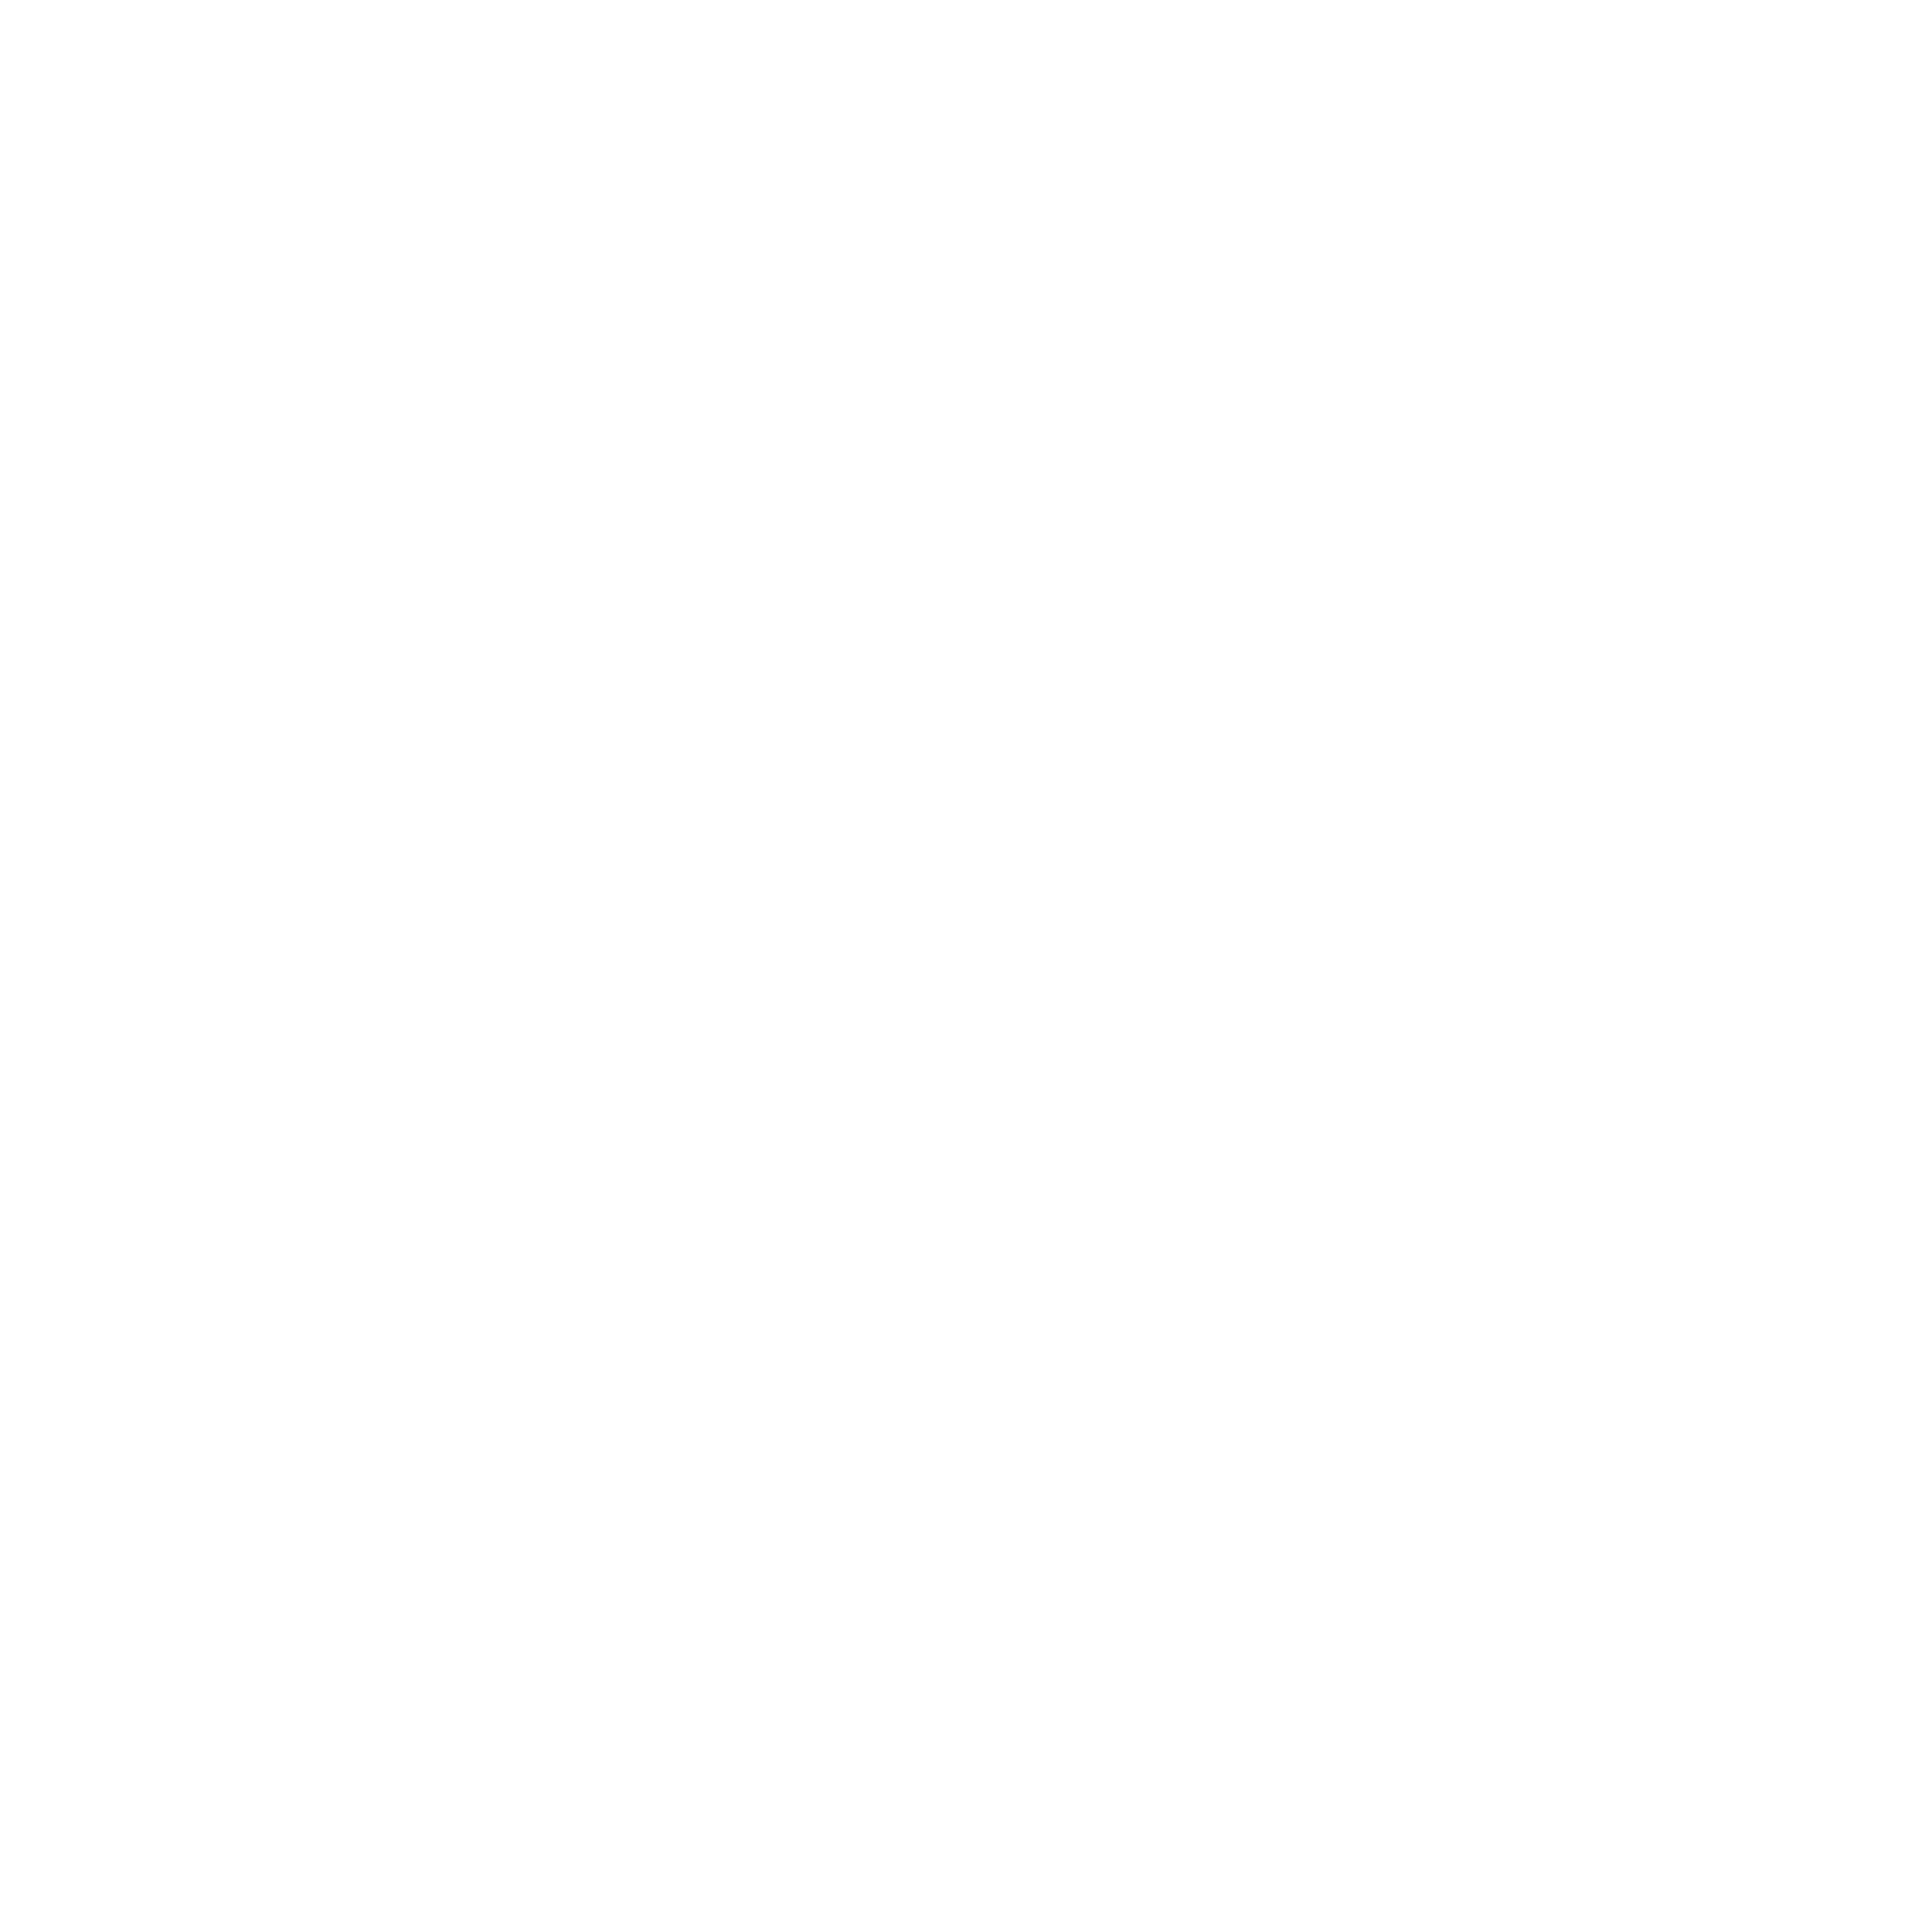 I need a powerful logo to disrupt healthy food industry